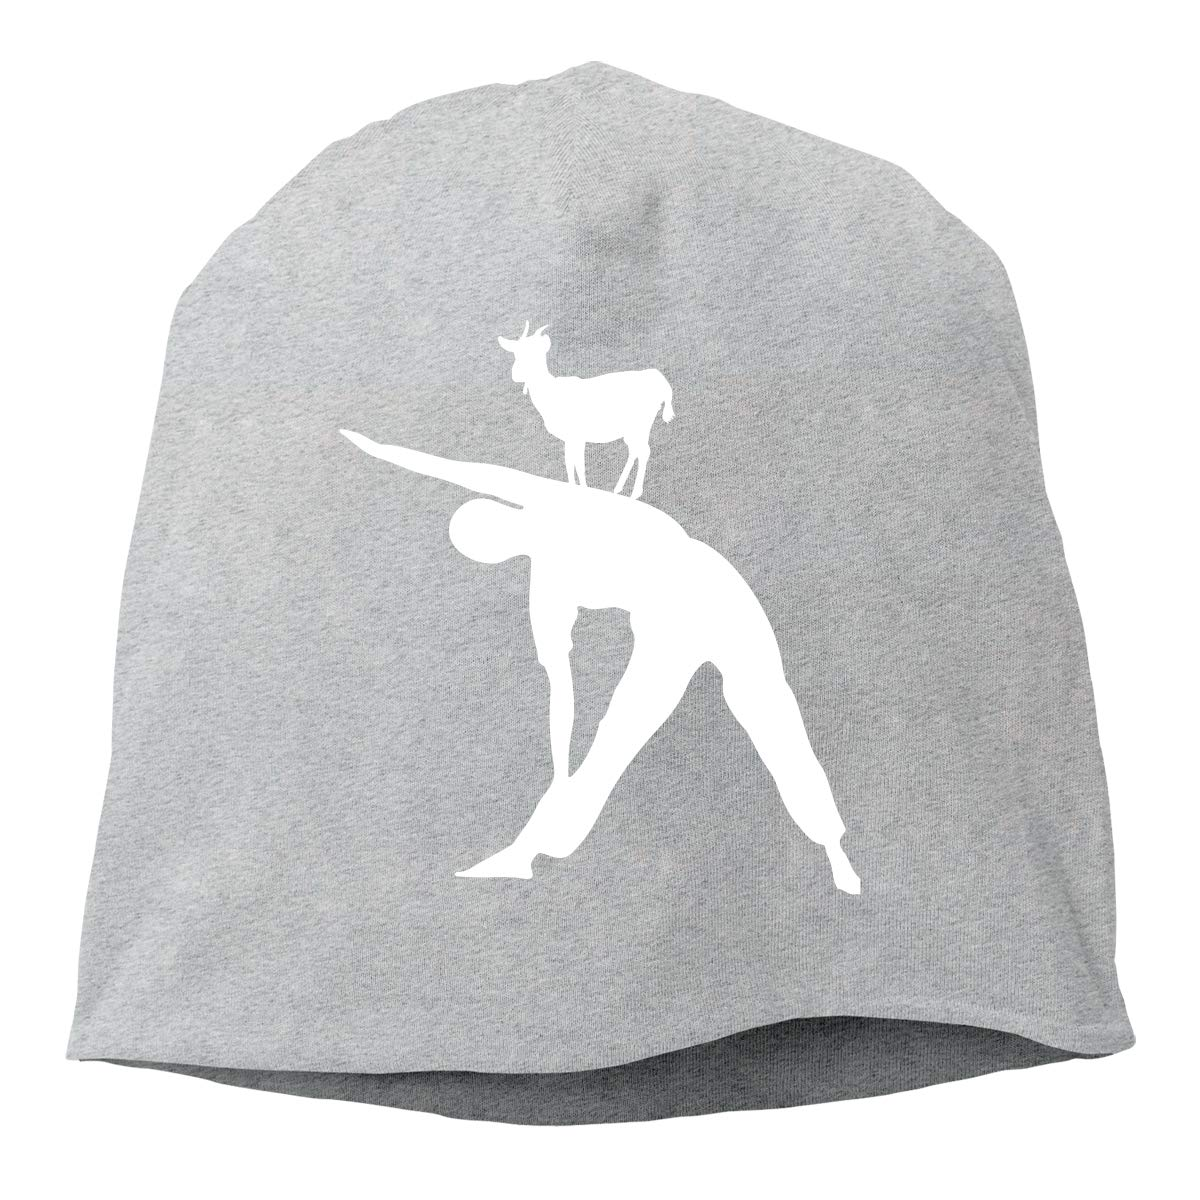 Yoga and Goat Unisex Knitted Hat Beanie Hat Warm Hats Skull Cap